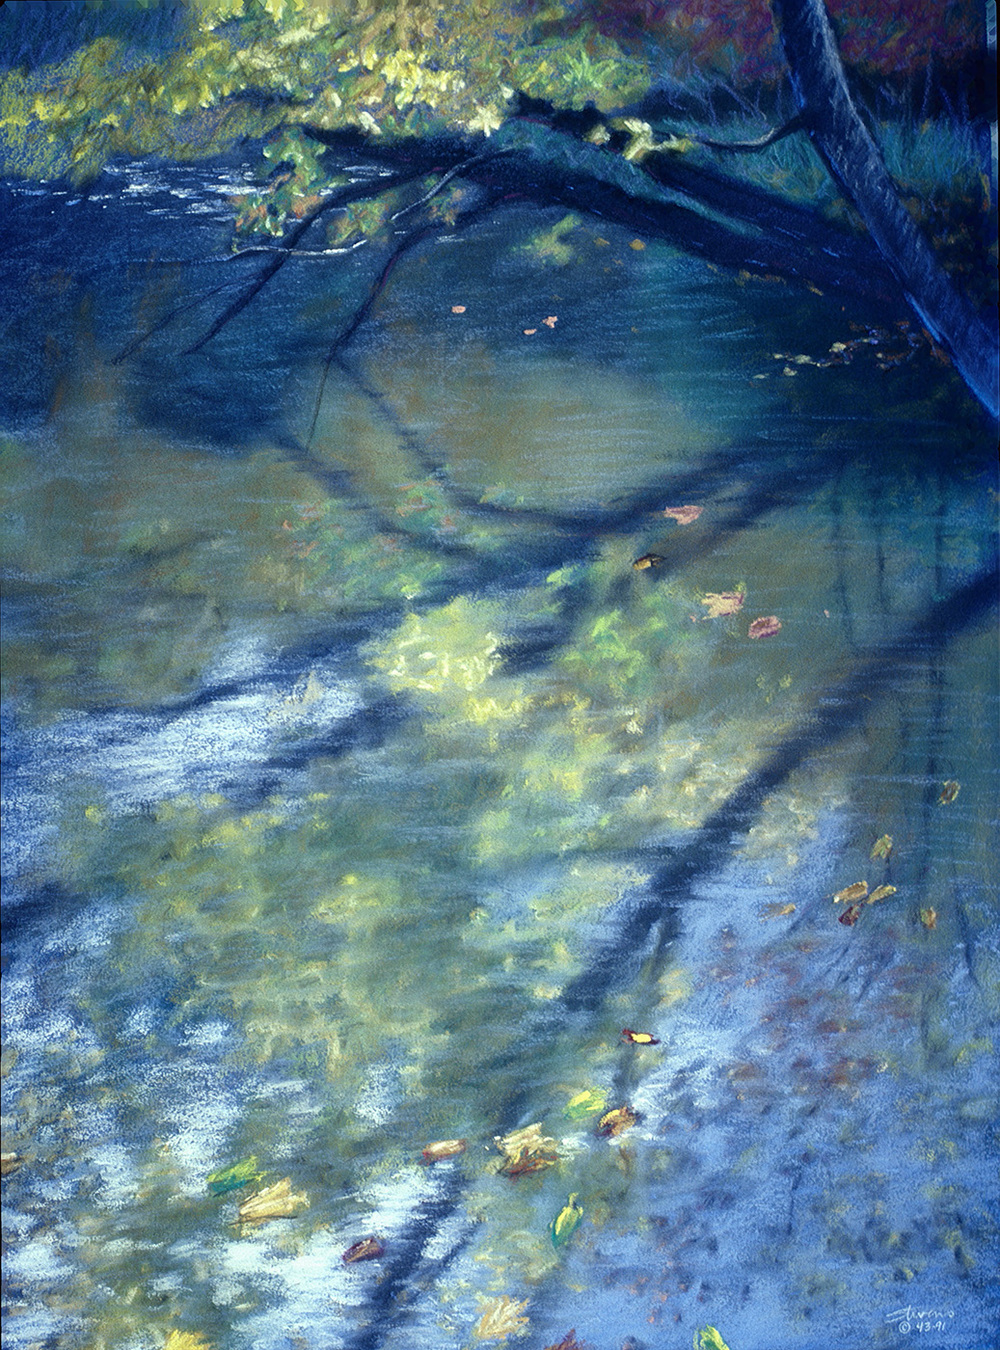 Reflections | pastel on paper | 23 x 16"